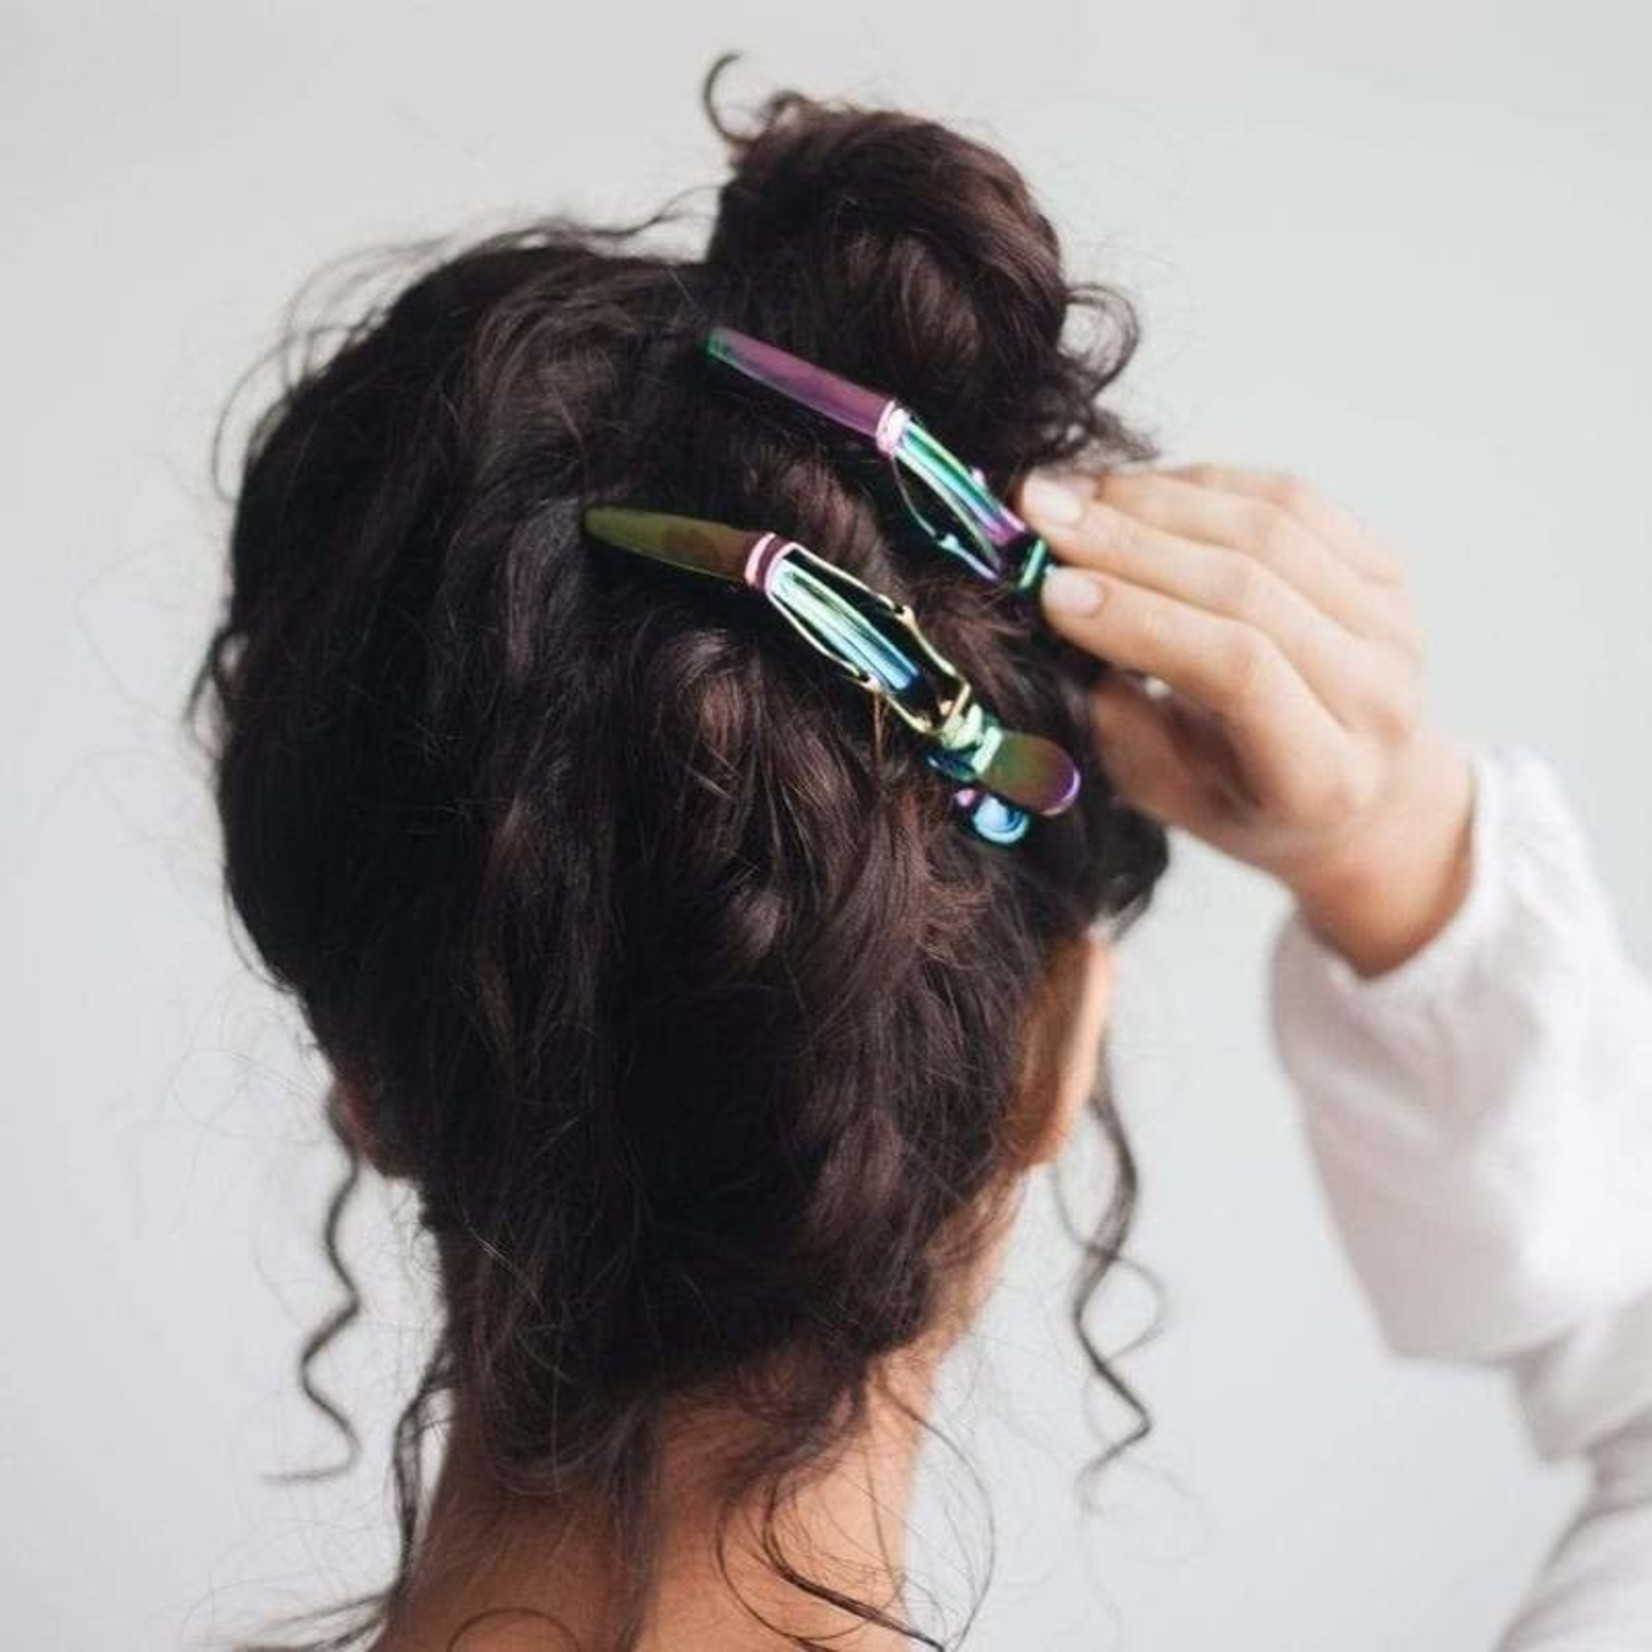 /KIT•SCH/ Blow Dry Clips 3pc - Iridescent